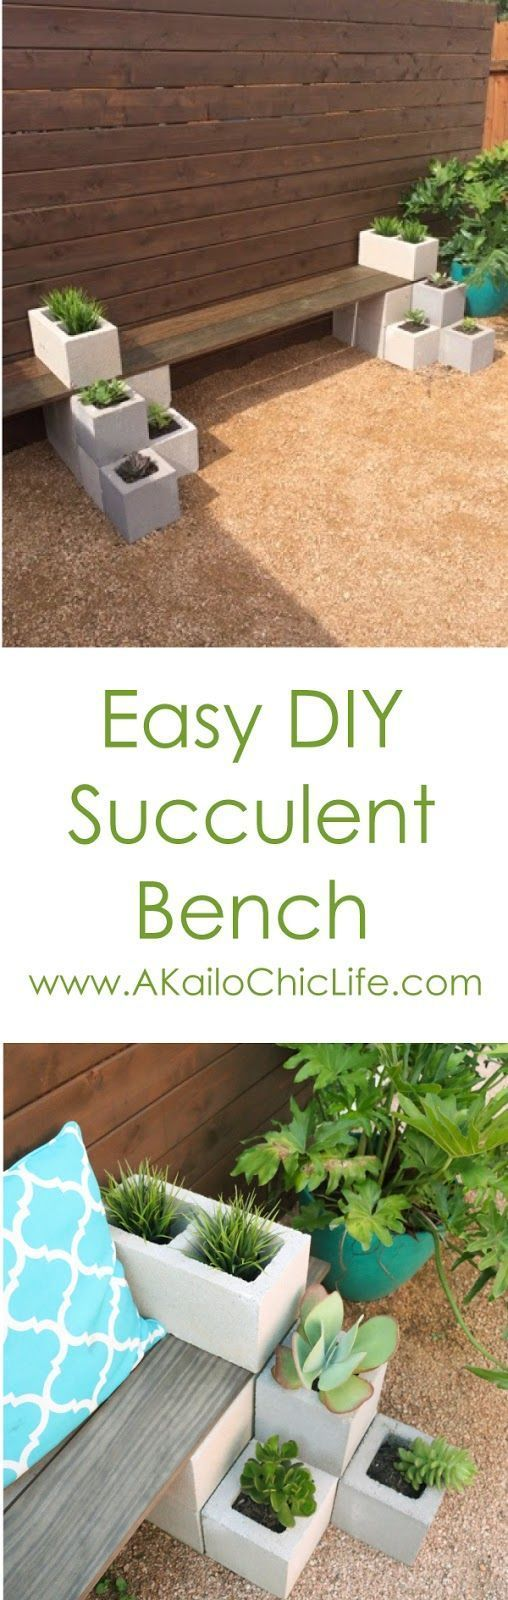 DIY It - Outdoor Succulent Bench - Easy DIY Succulent bench using cinder blocks and stained wood. Cheap and quick backyard garden project for beginners. Great spring garden project!